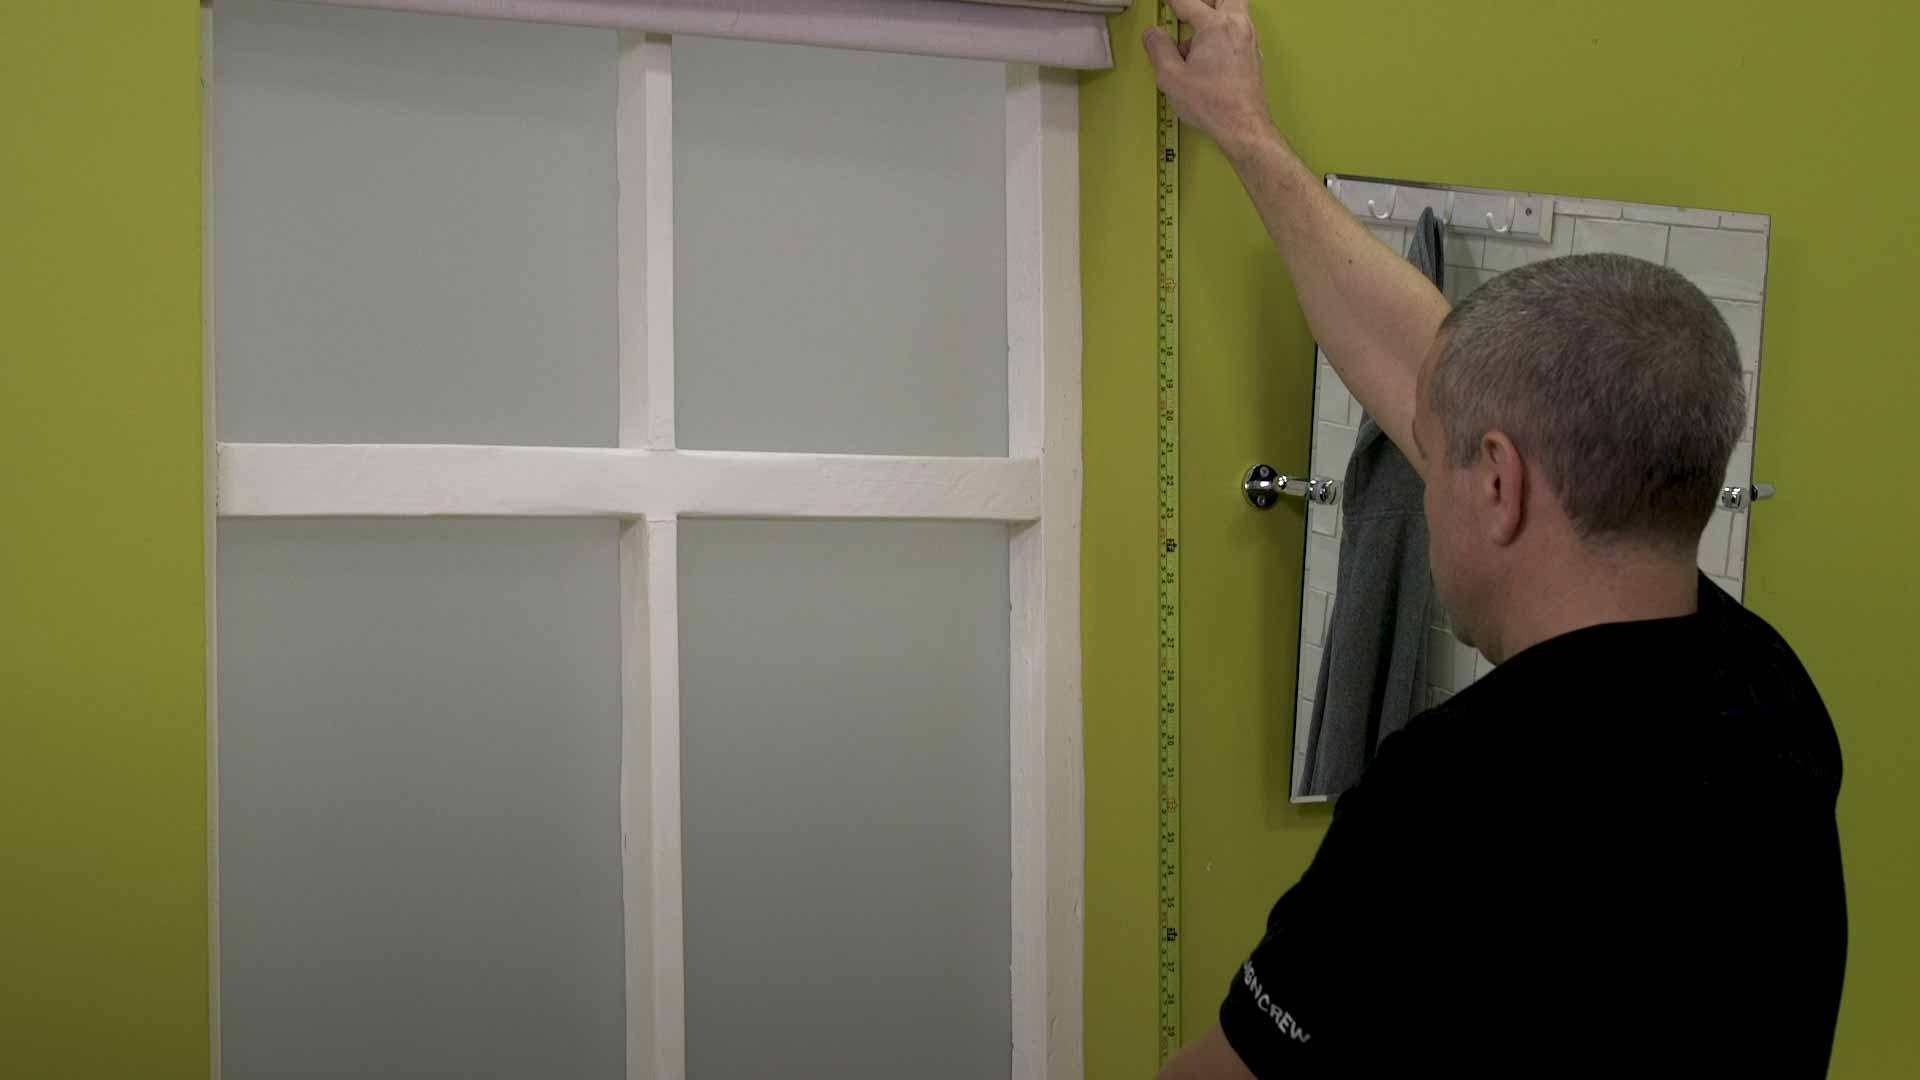 Measure windows, shelves and permanent fixtures